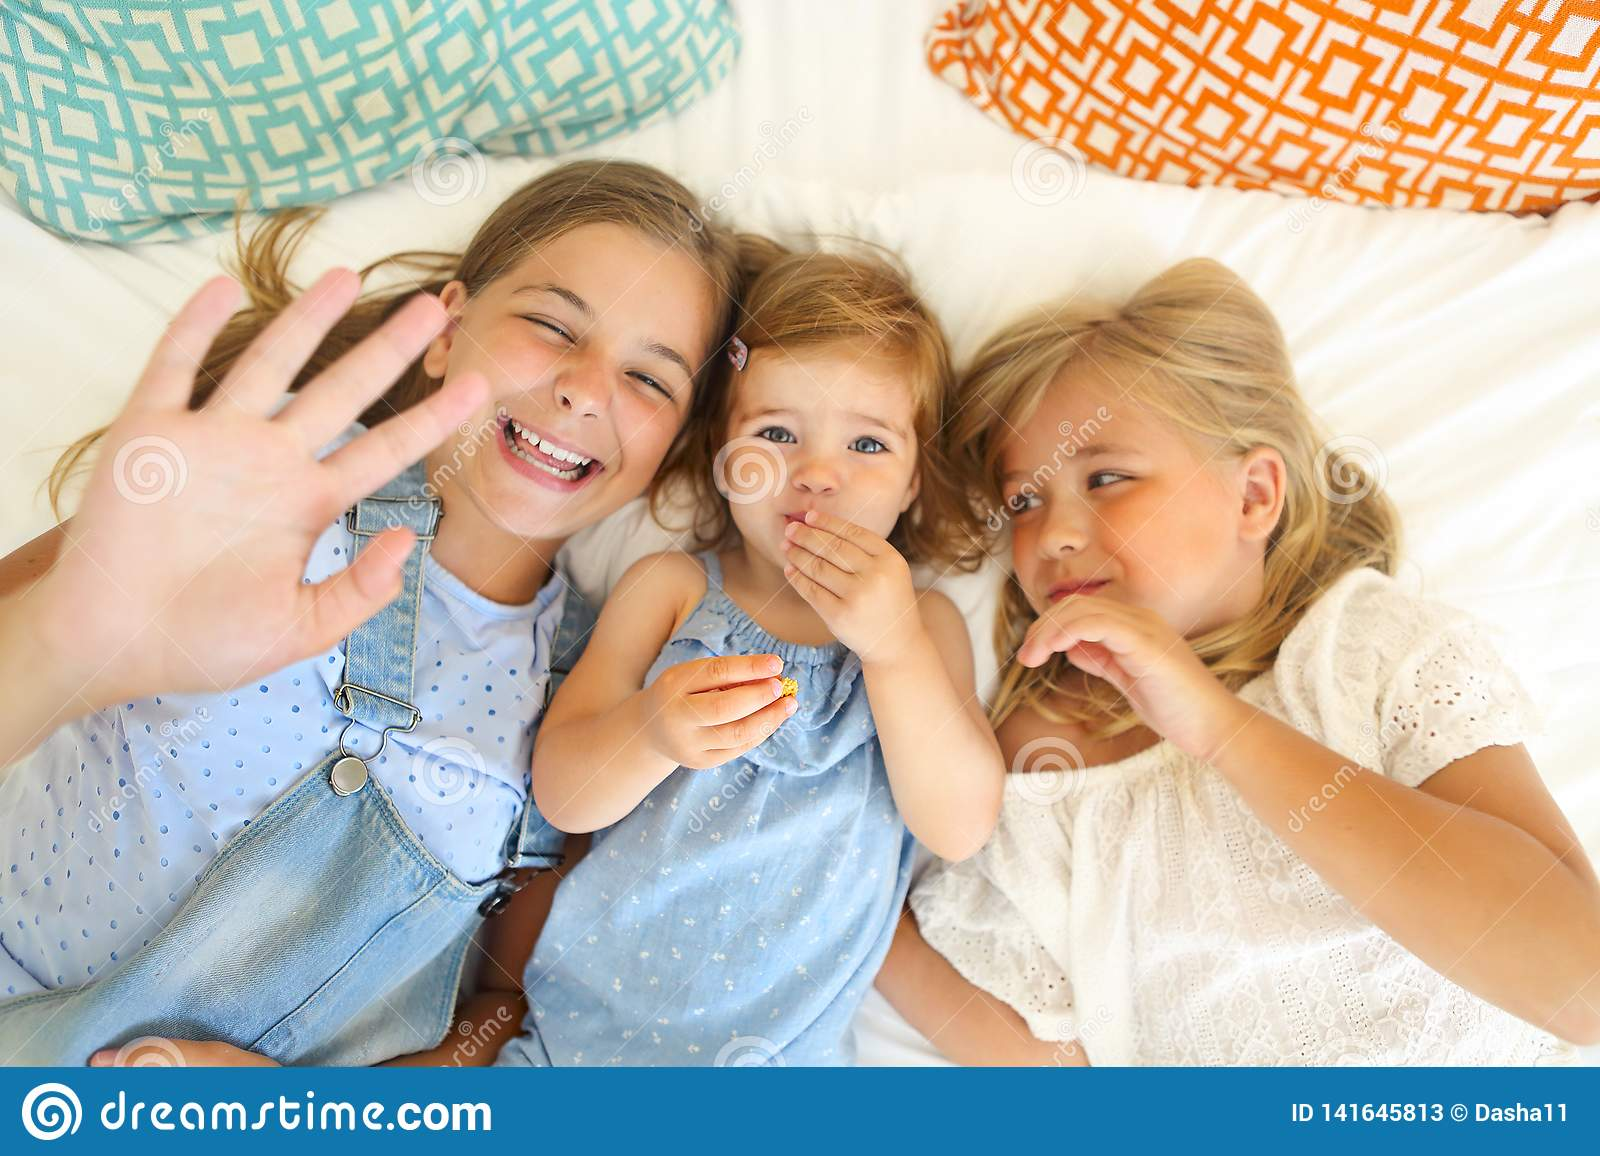 Three happy little sisters on a bed having fun